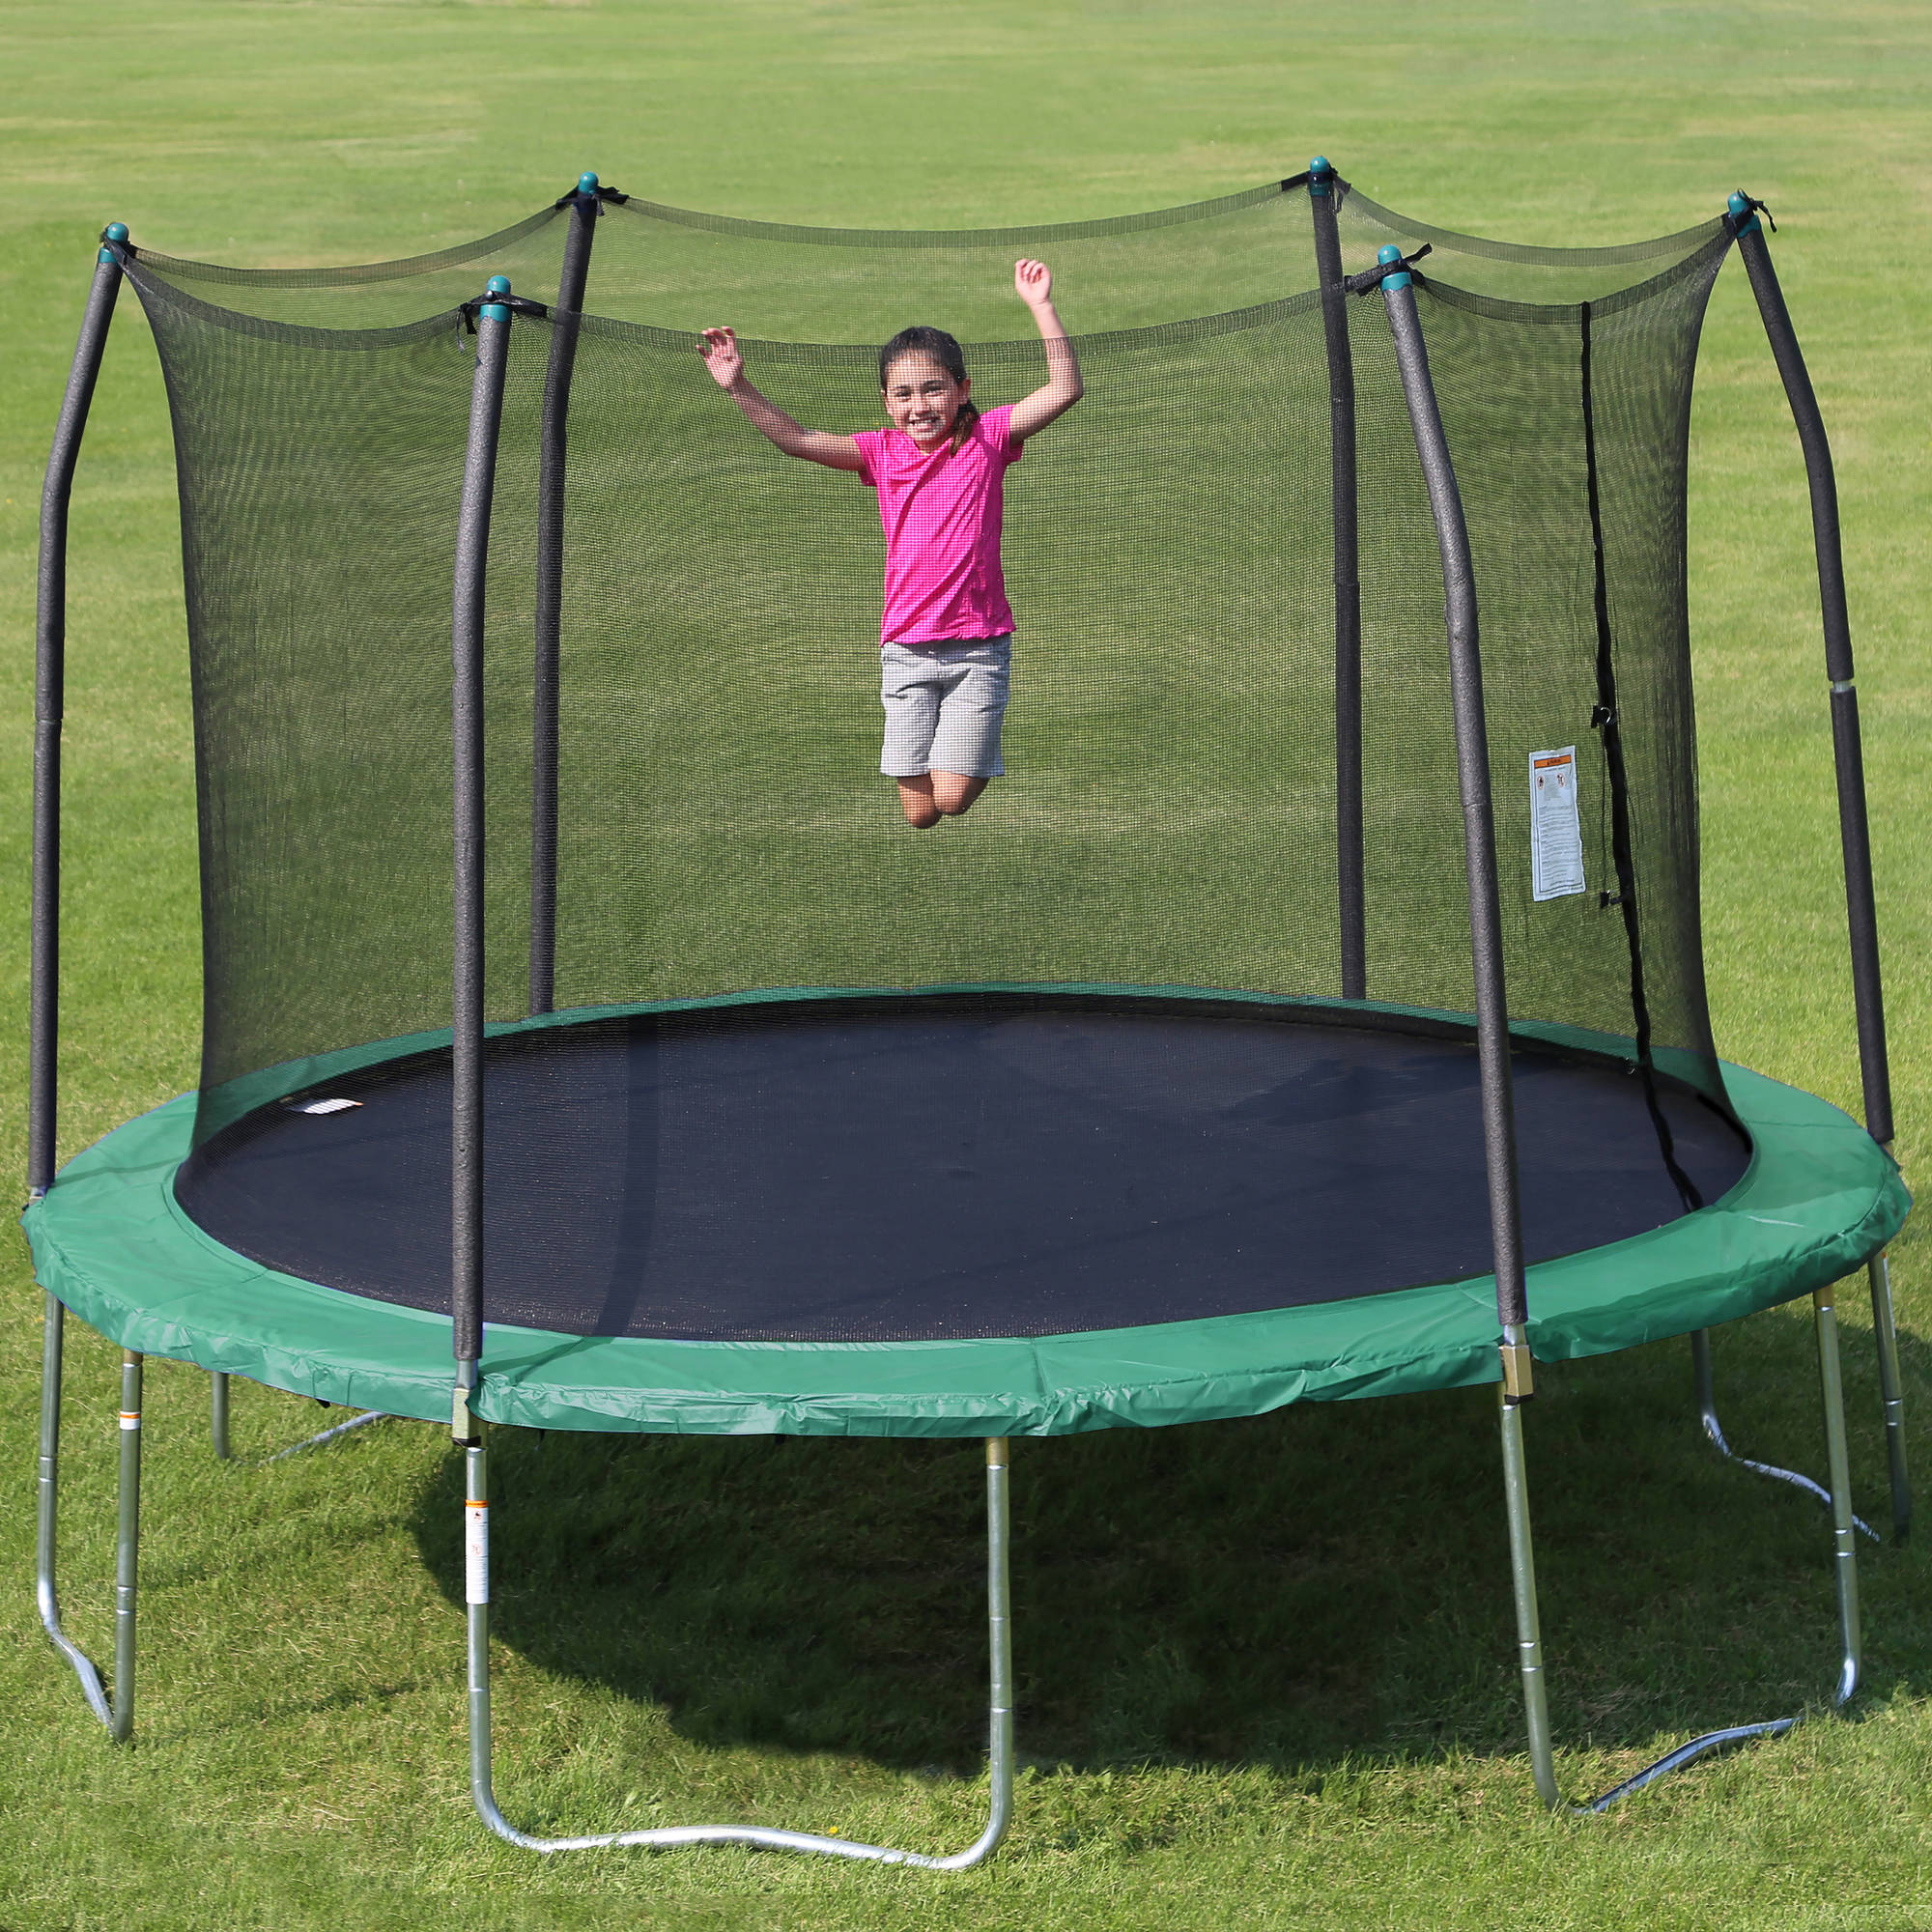 15' Premium Trampoline Replacement Safety Pad (Spring